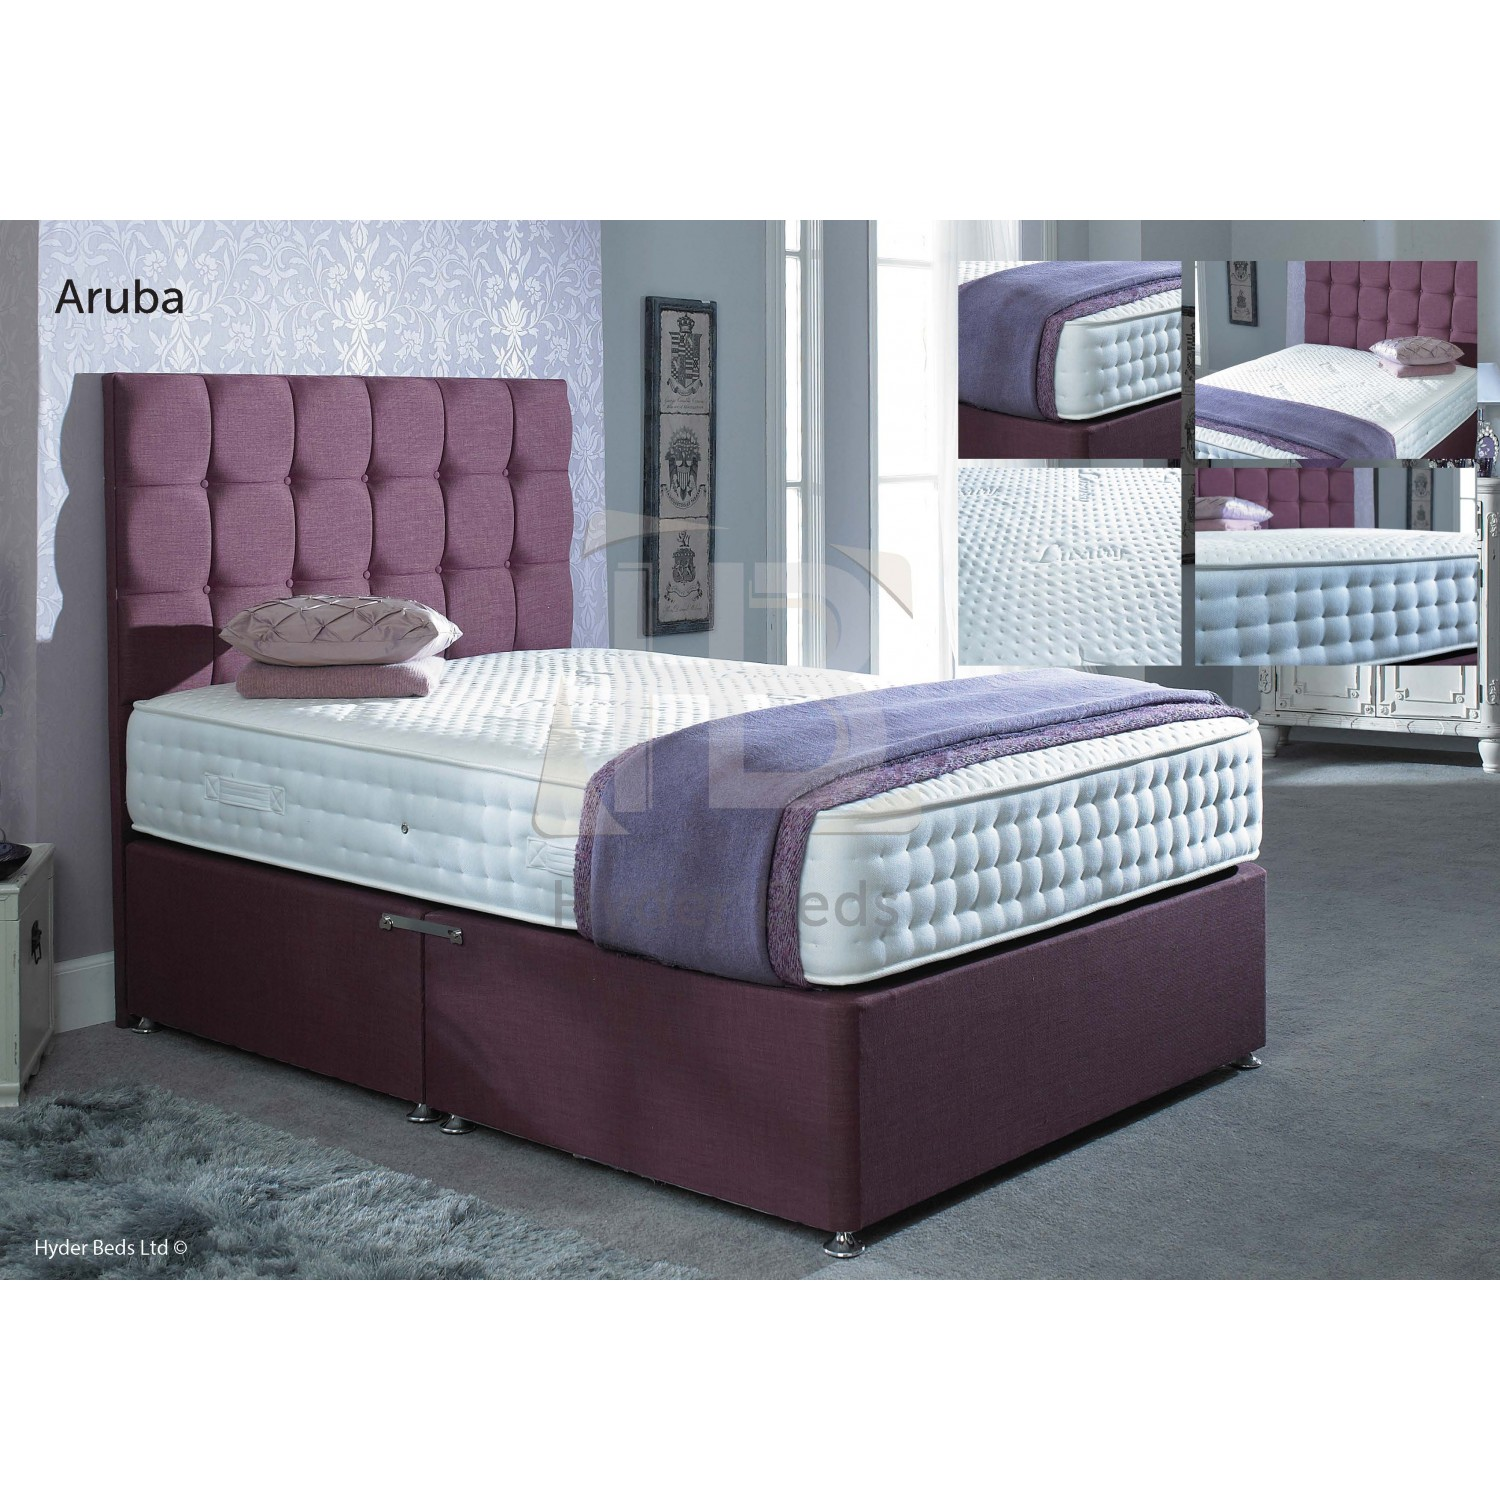 .Hyder Beds Aruba Latex 1000 Encapsulated Pocket Divan Set